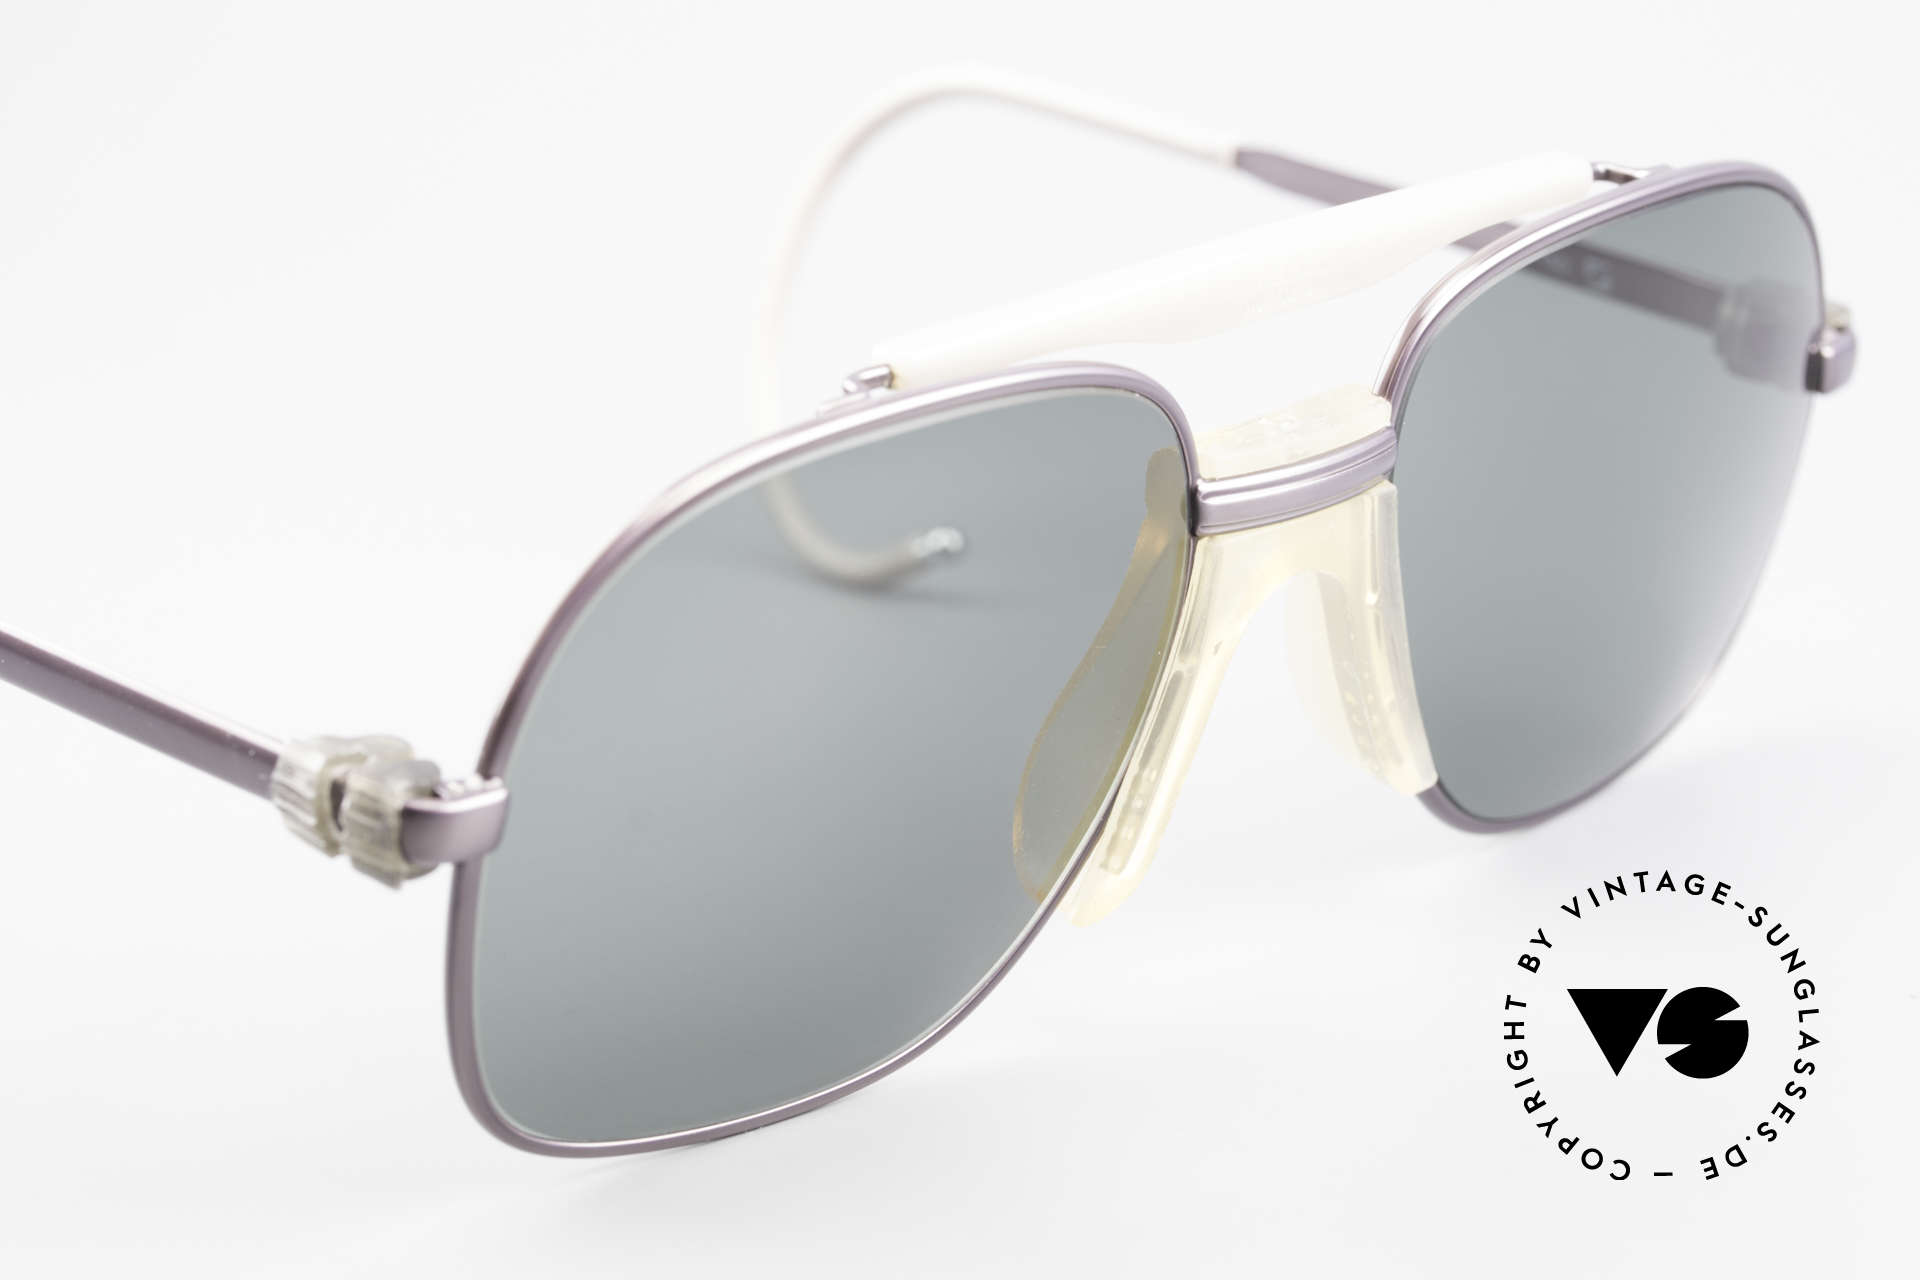 Zeiss 7037 Sports Sunglasses Old School, NO RETRO frame, but a rare old original from 1982!, Made for Men and Women